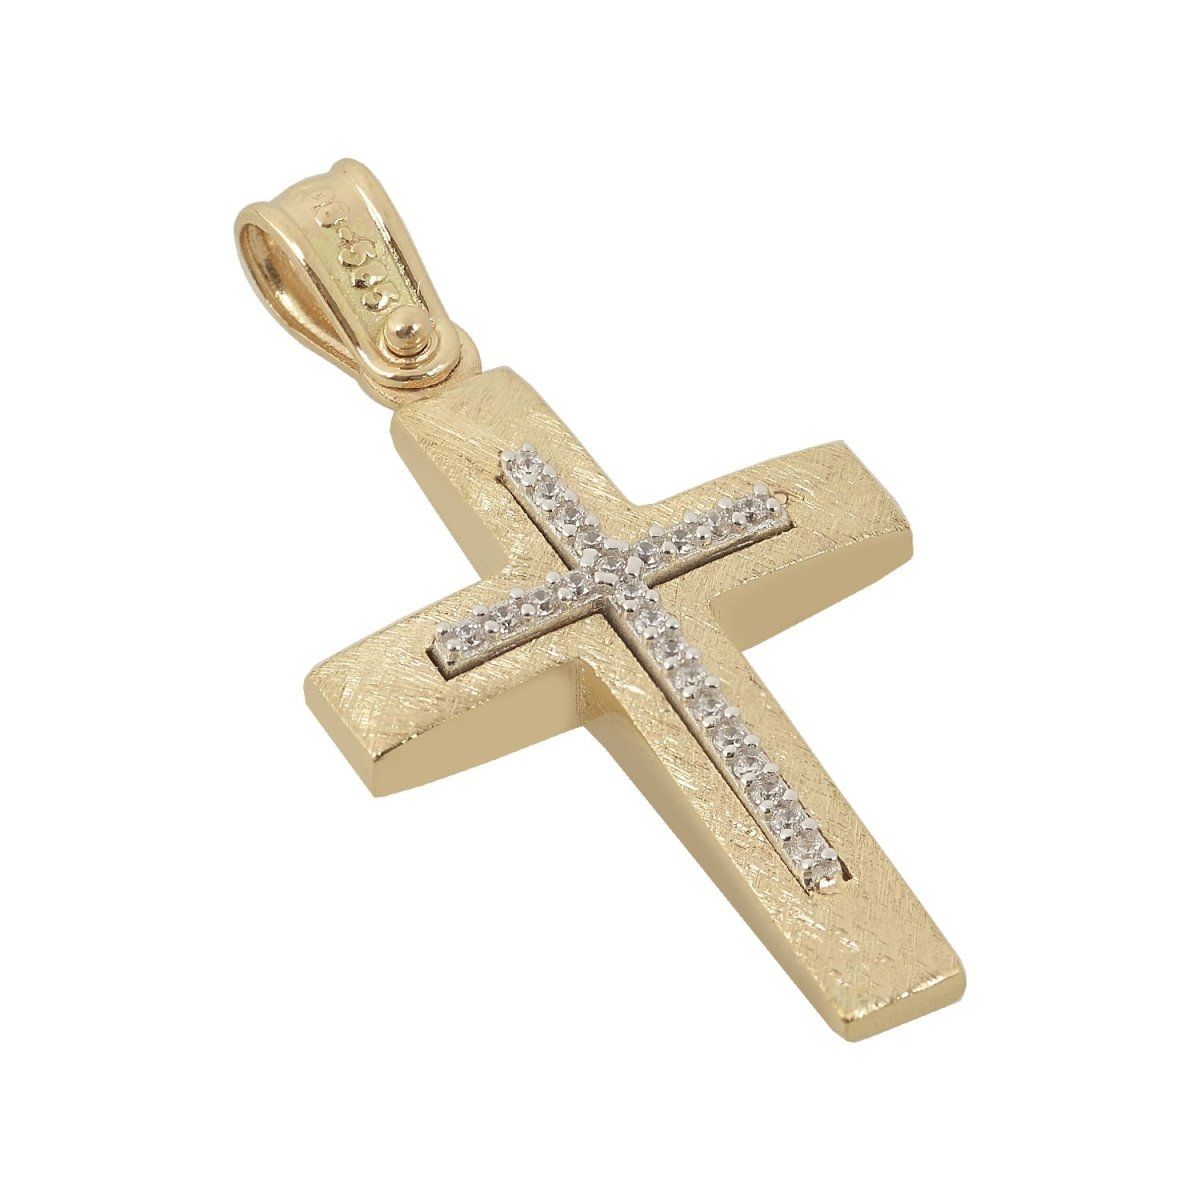 Christening Cross STA4444 Double Sided Gold K14 - Goldy Jewelry Store